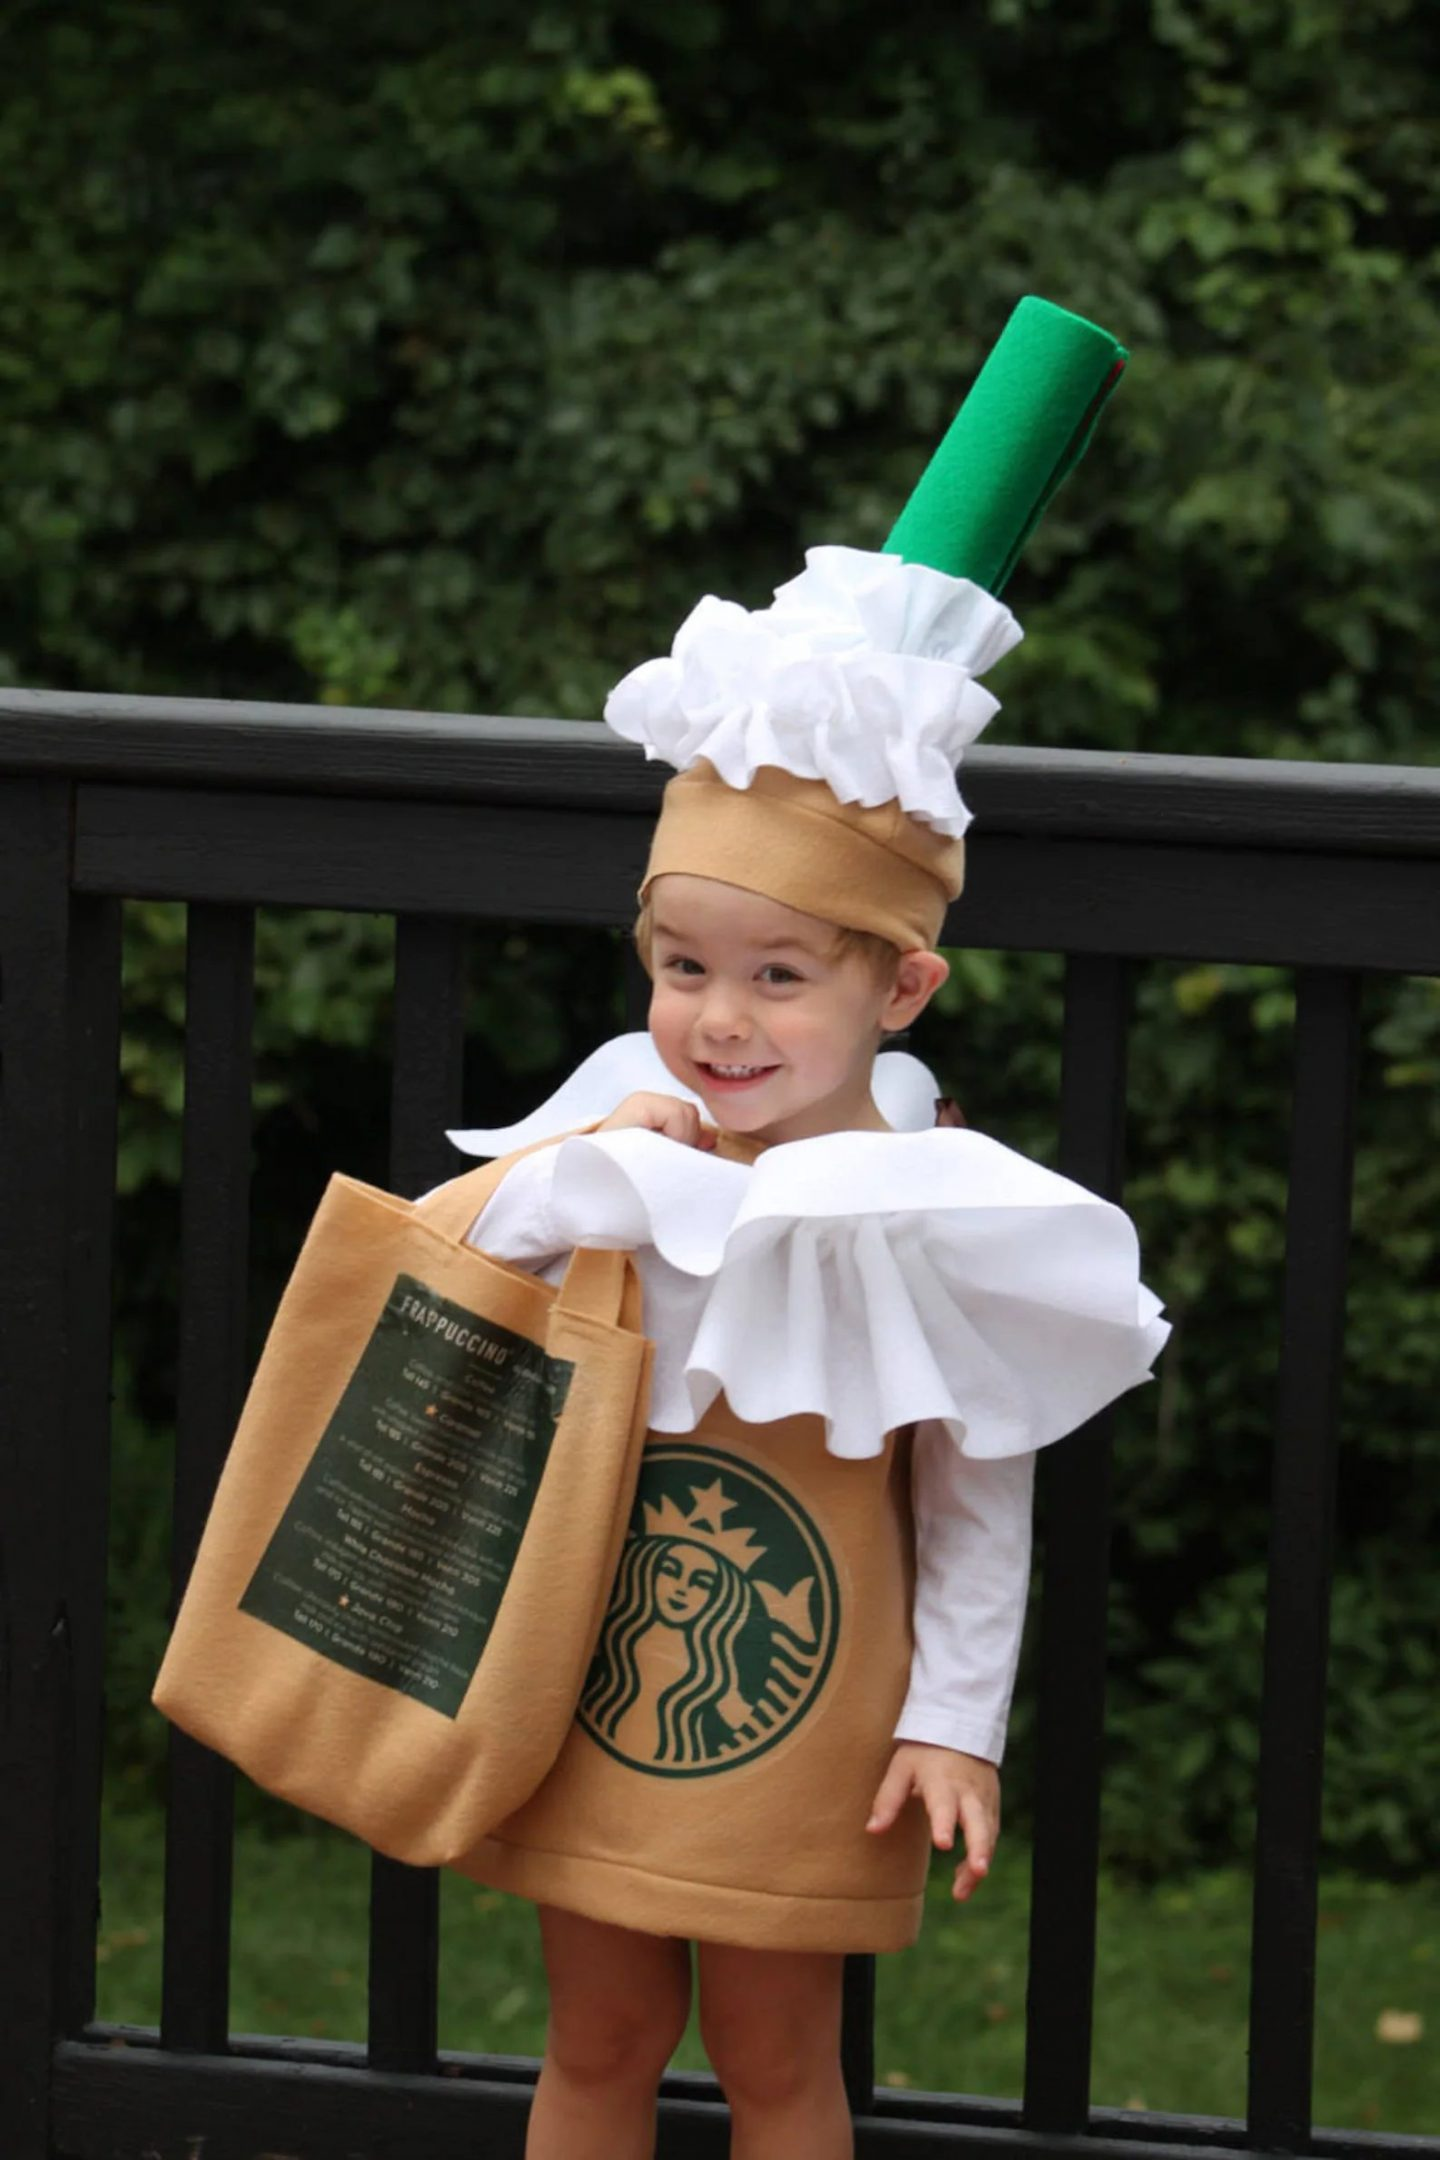 Starbucks Frappuccino costume for toddlers